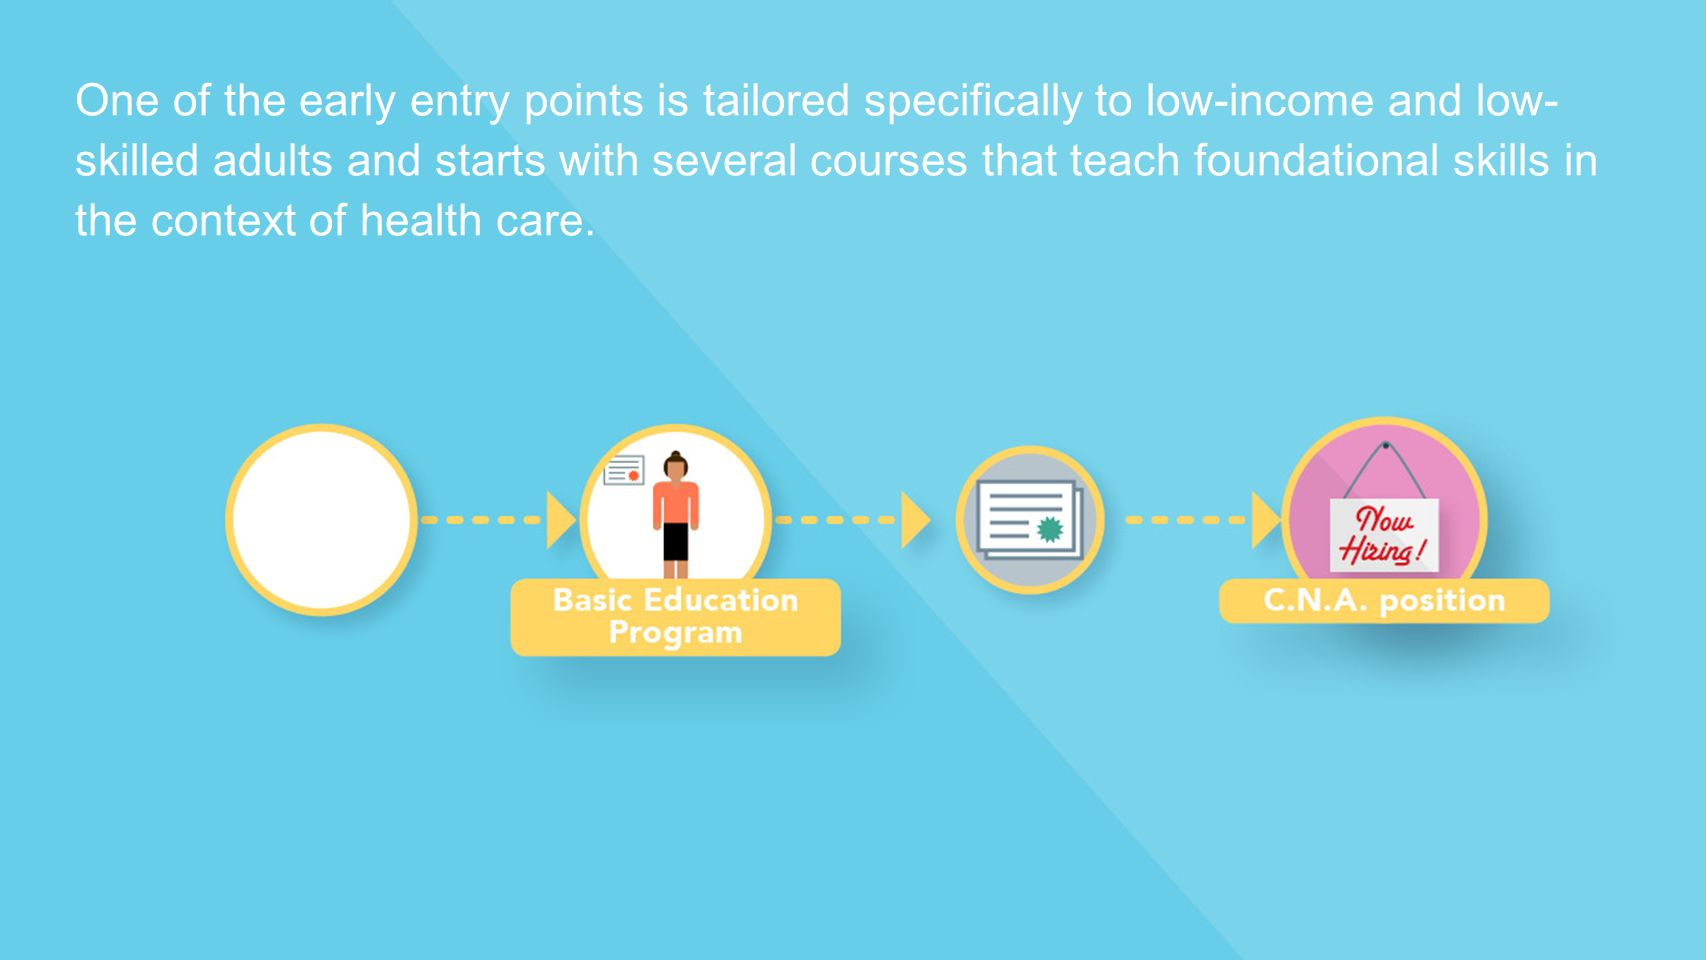 One of the early entry points is tailored specifically to low-income and low- skilled adults and starts with several courses that teach foundational skills in the context of health care.